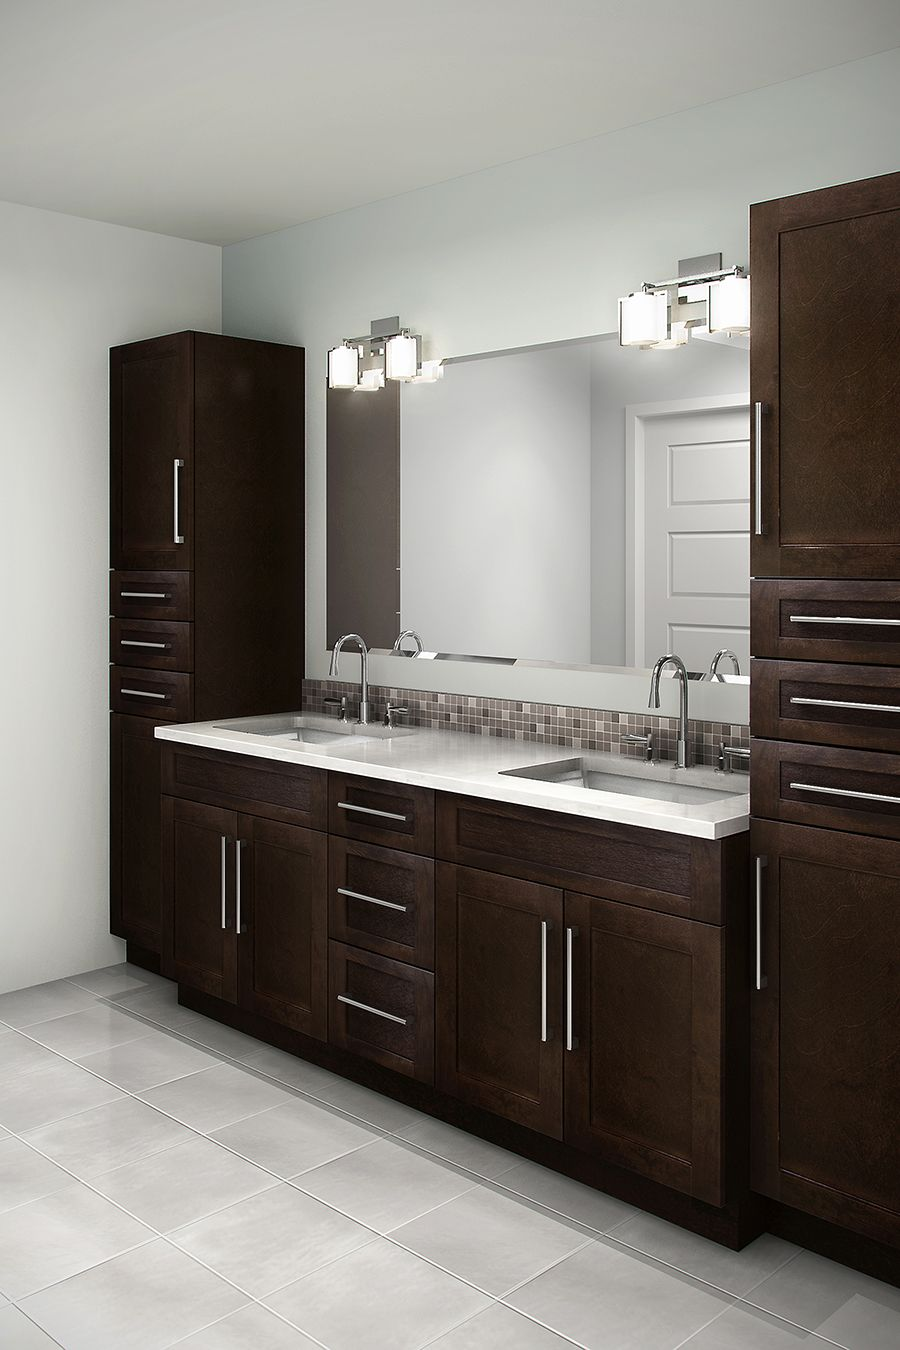 chocolate pear cabinets   Dream Home   Pinterest   Brown kitchens ...